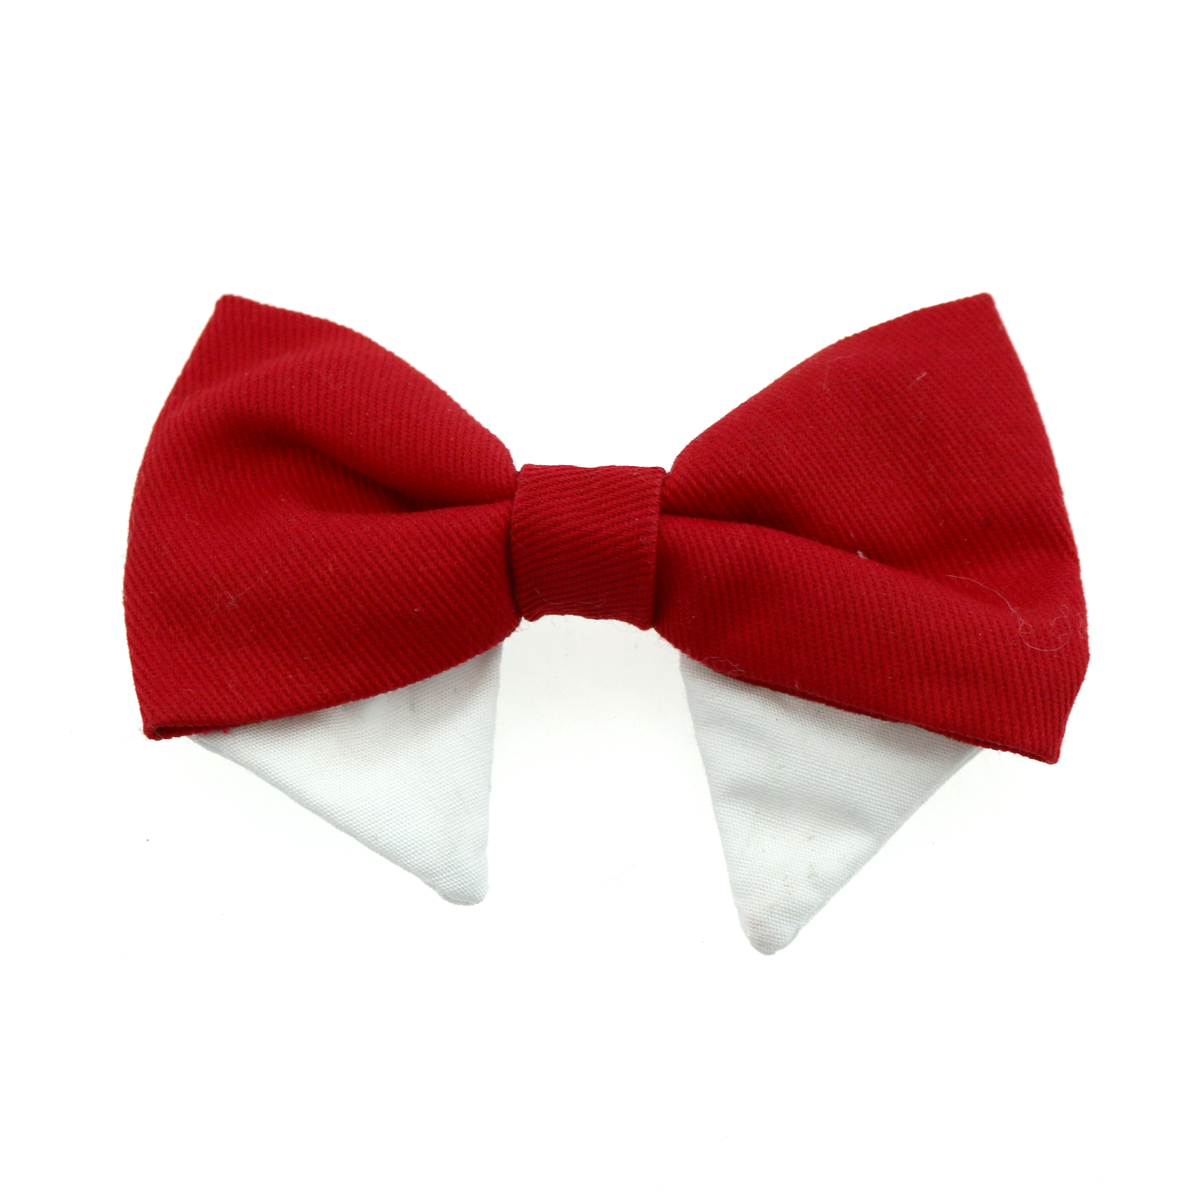 Doggie Design Universal Dog Bow Tie, Solid Red, Type 1